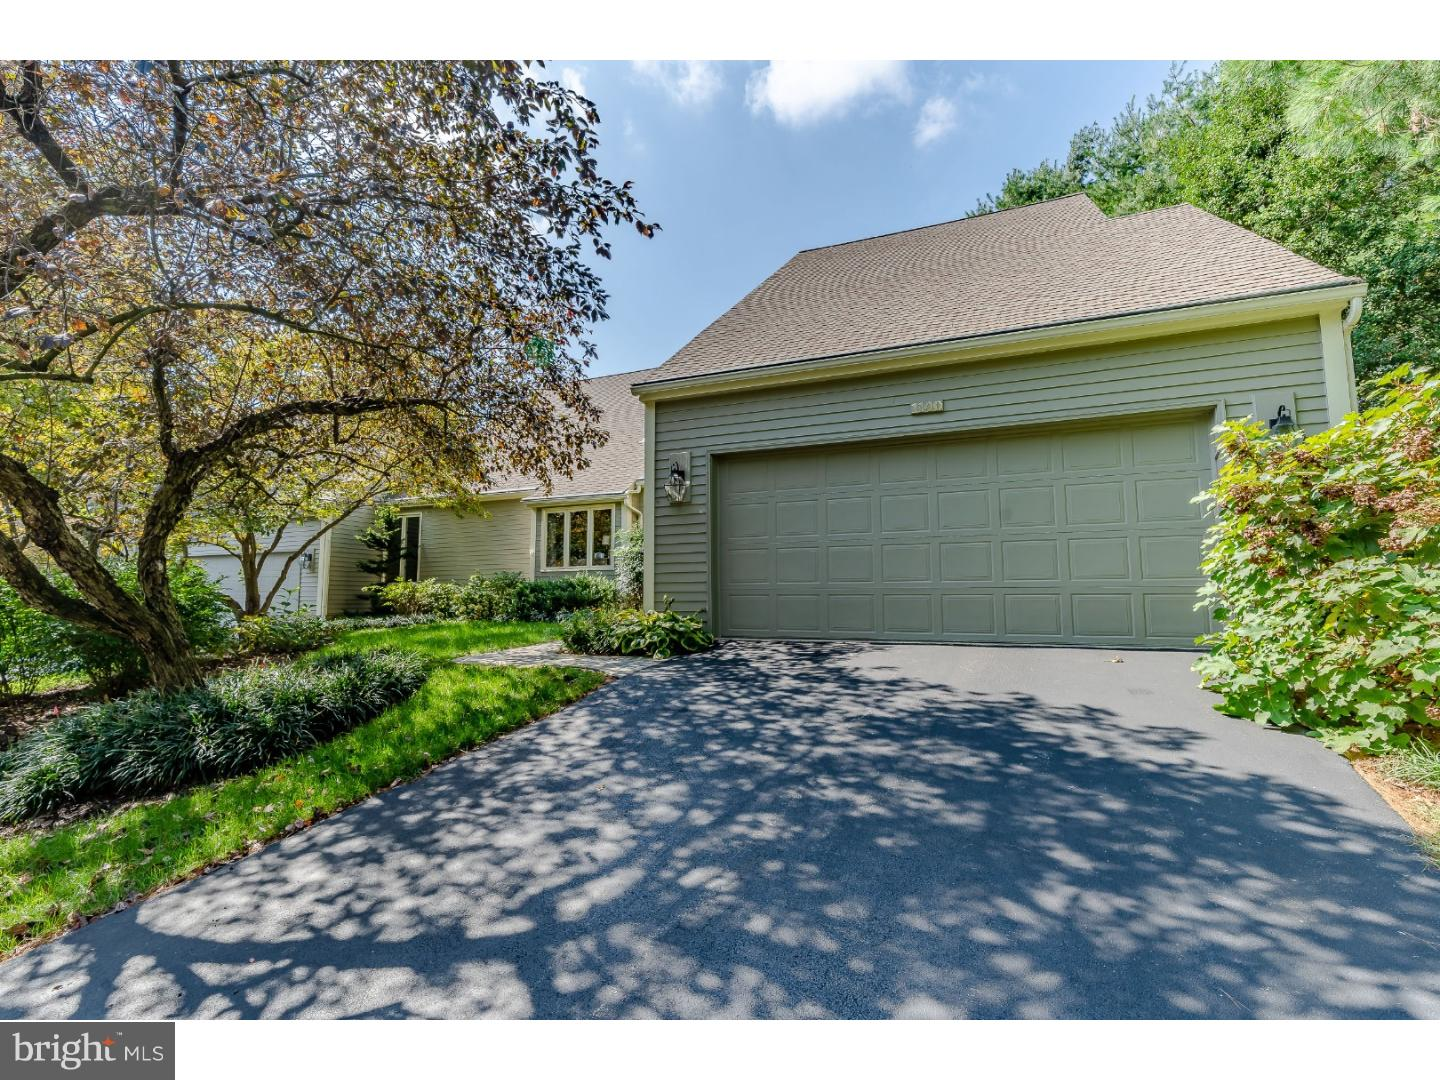 1140 Mews Lane West Chester, PA 19382